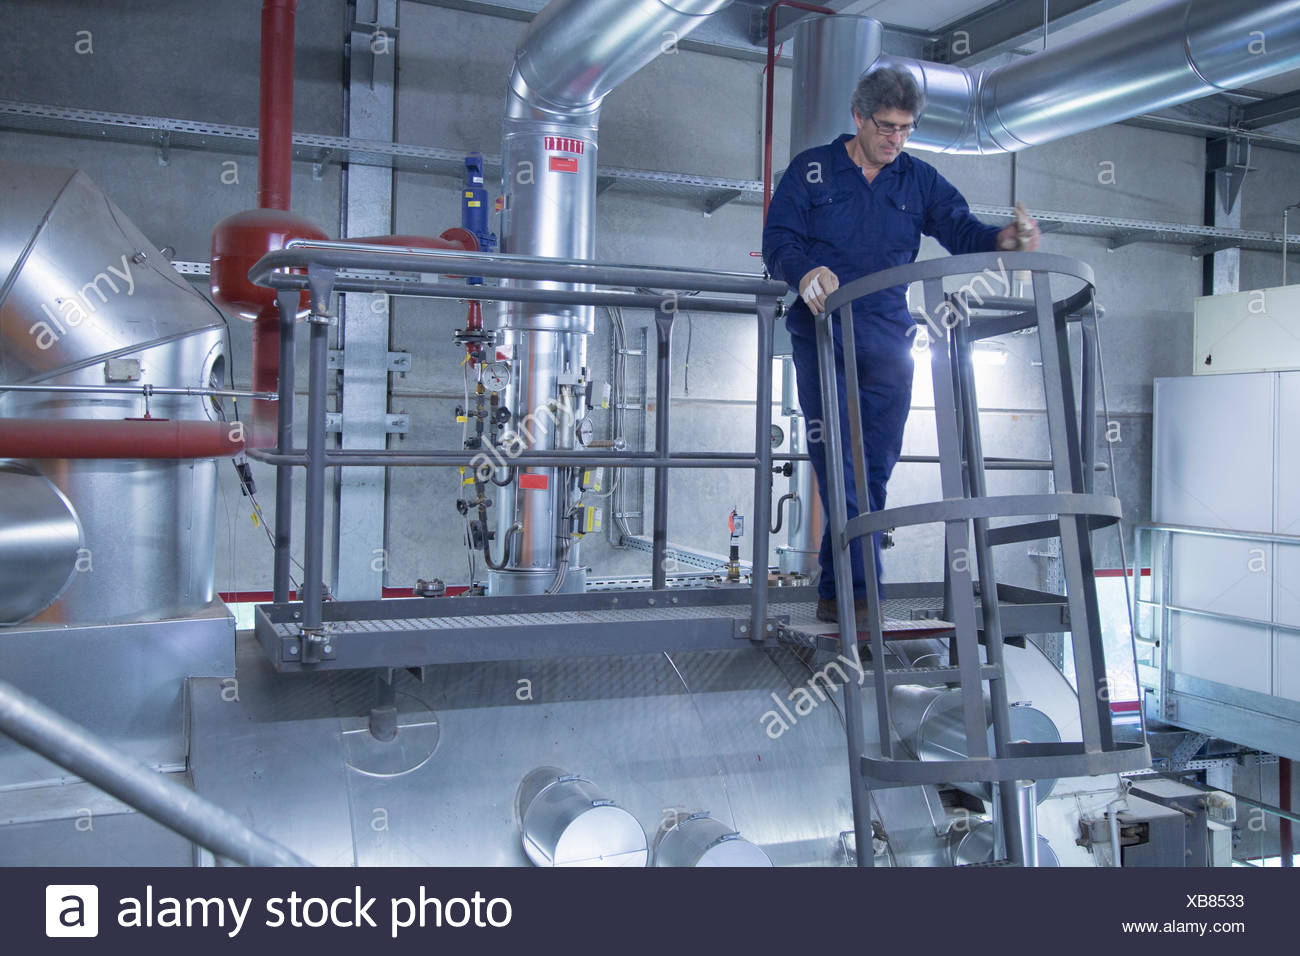 Engineer inspecting on stairs of access platform in power station - Stock Image